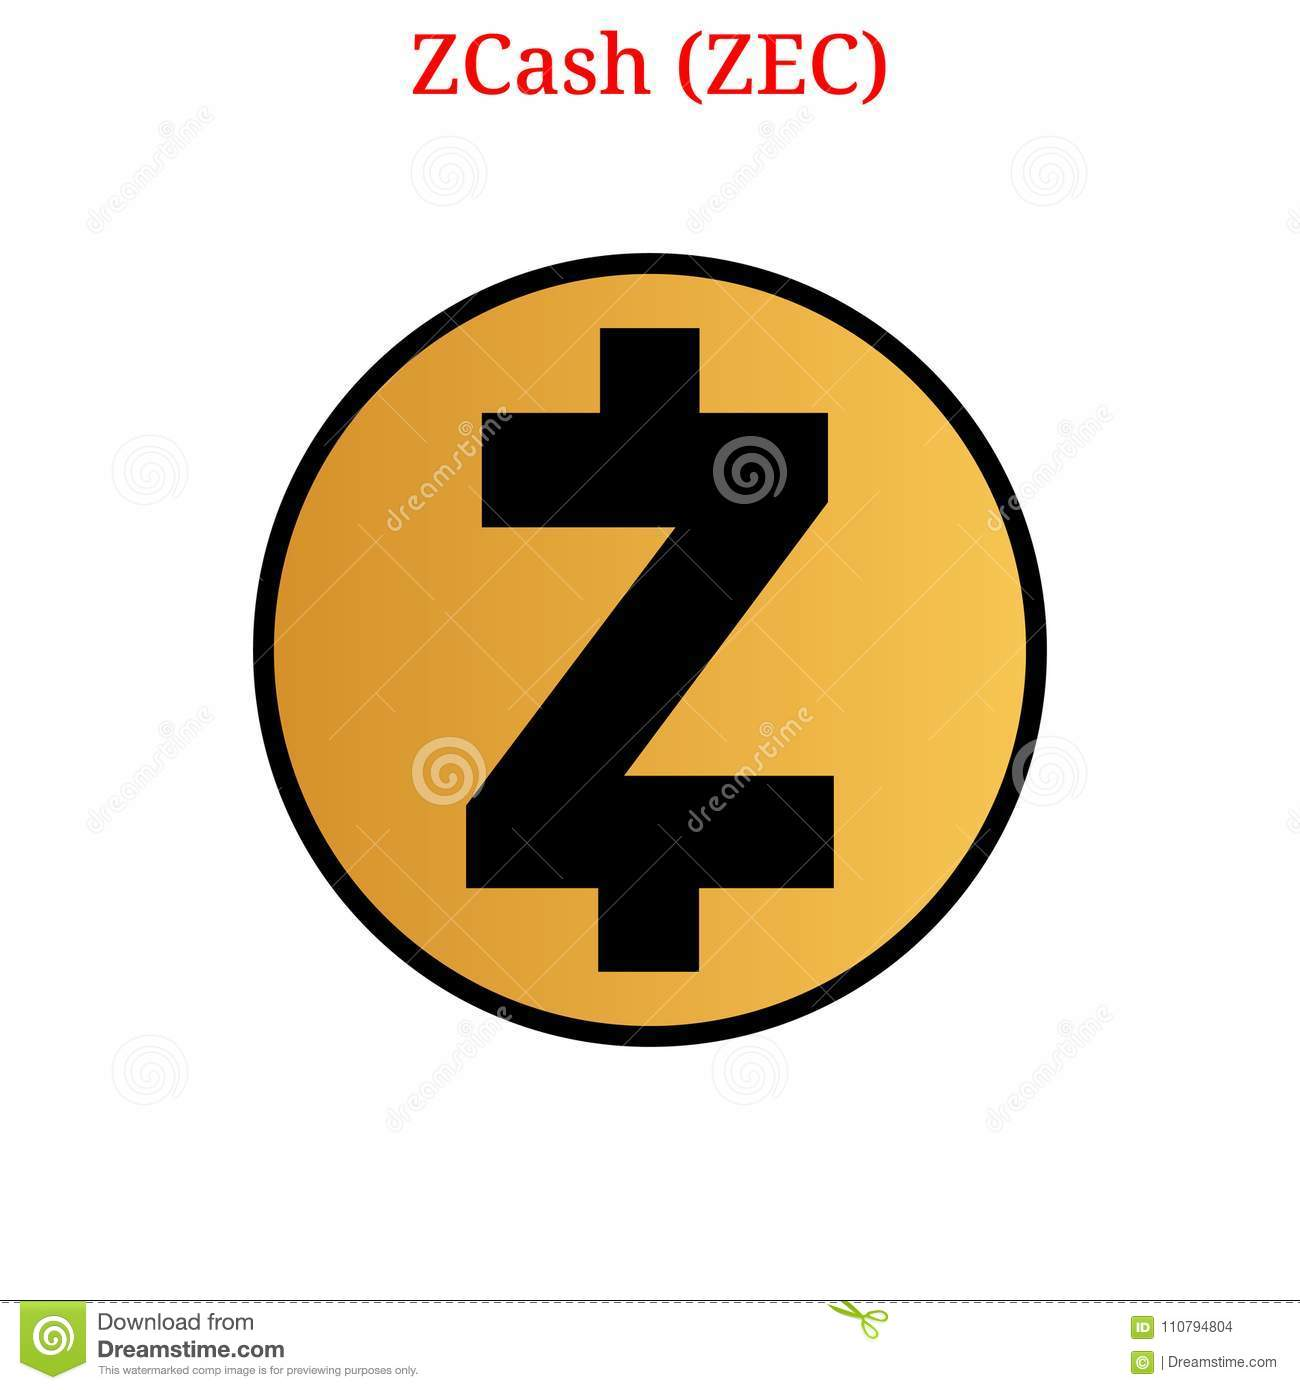 Vector Zcash ZEC Digital Cryptocurrency Logo Icon Illustration Isolated On White Background